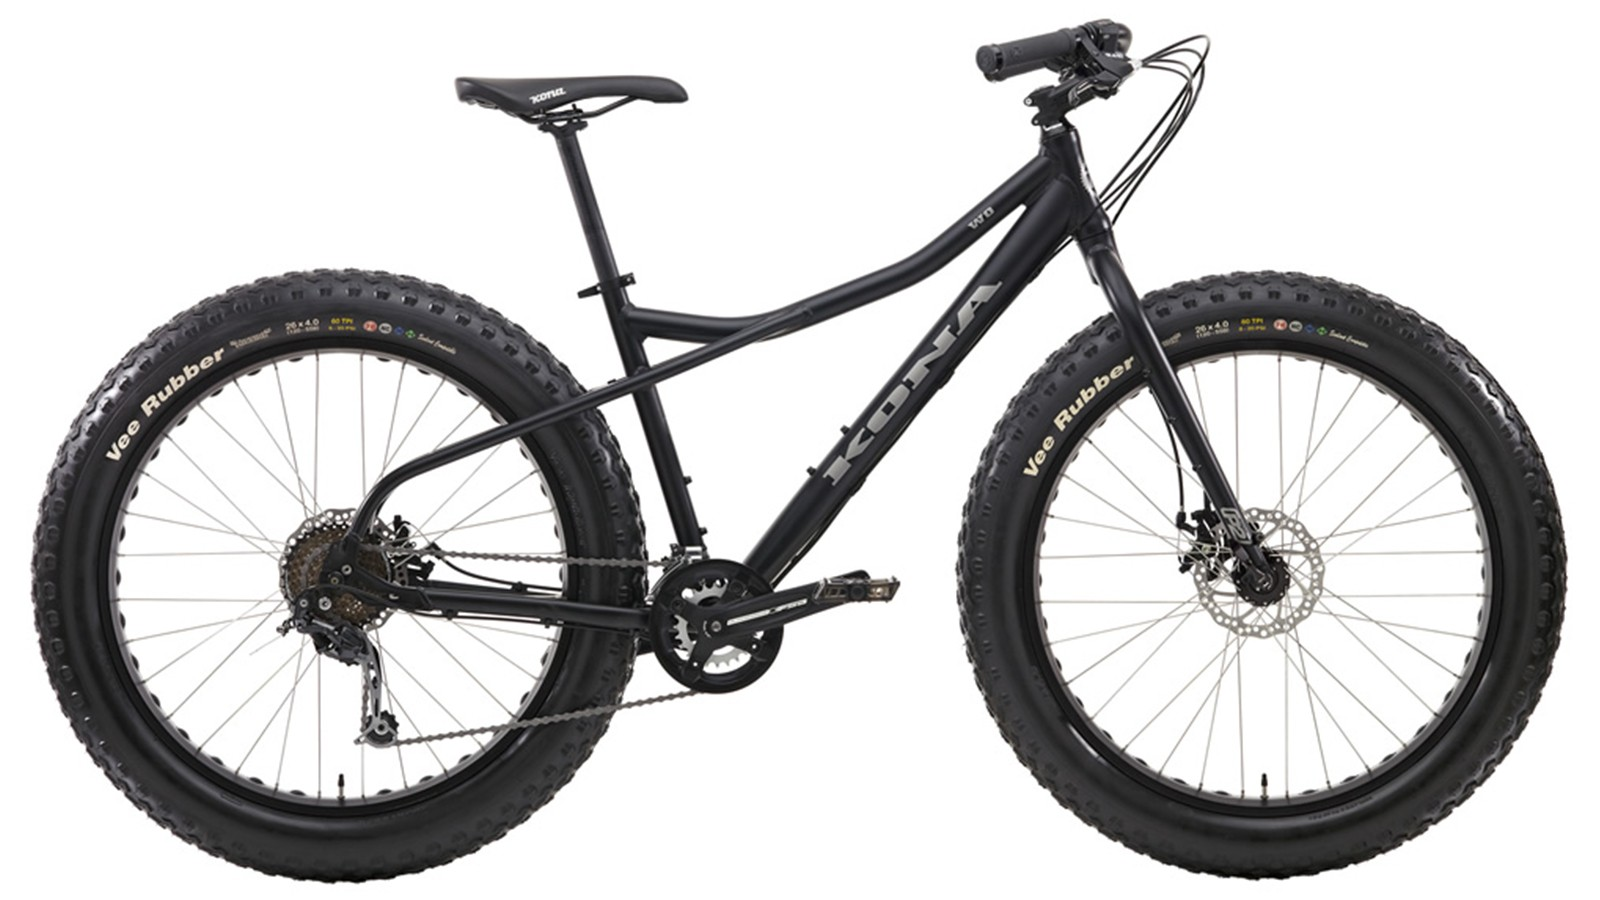 This recall applies to approximately 531 Wo fat bikes sold from September 2013 to July 2014